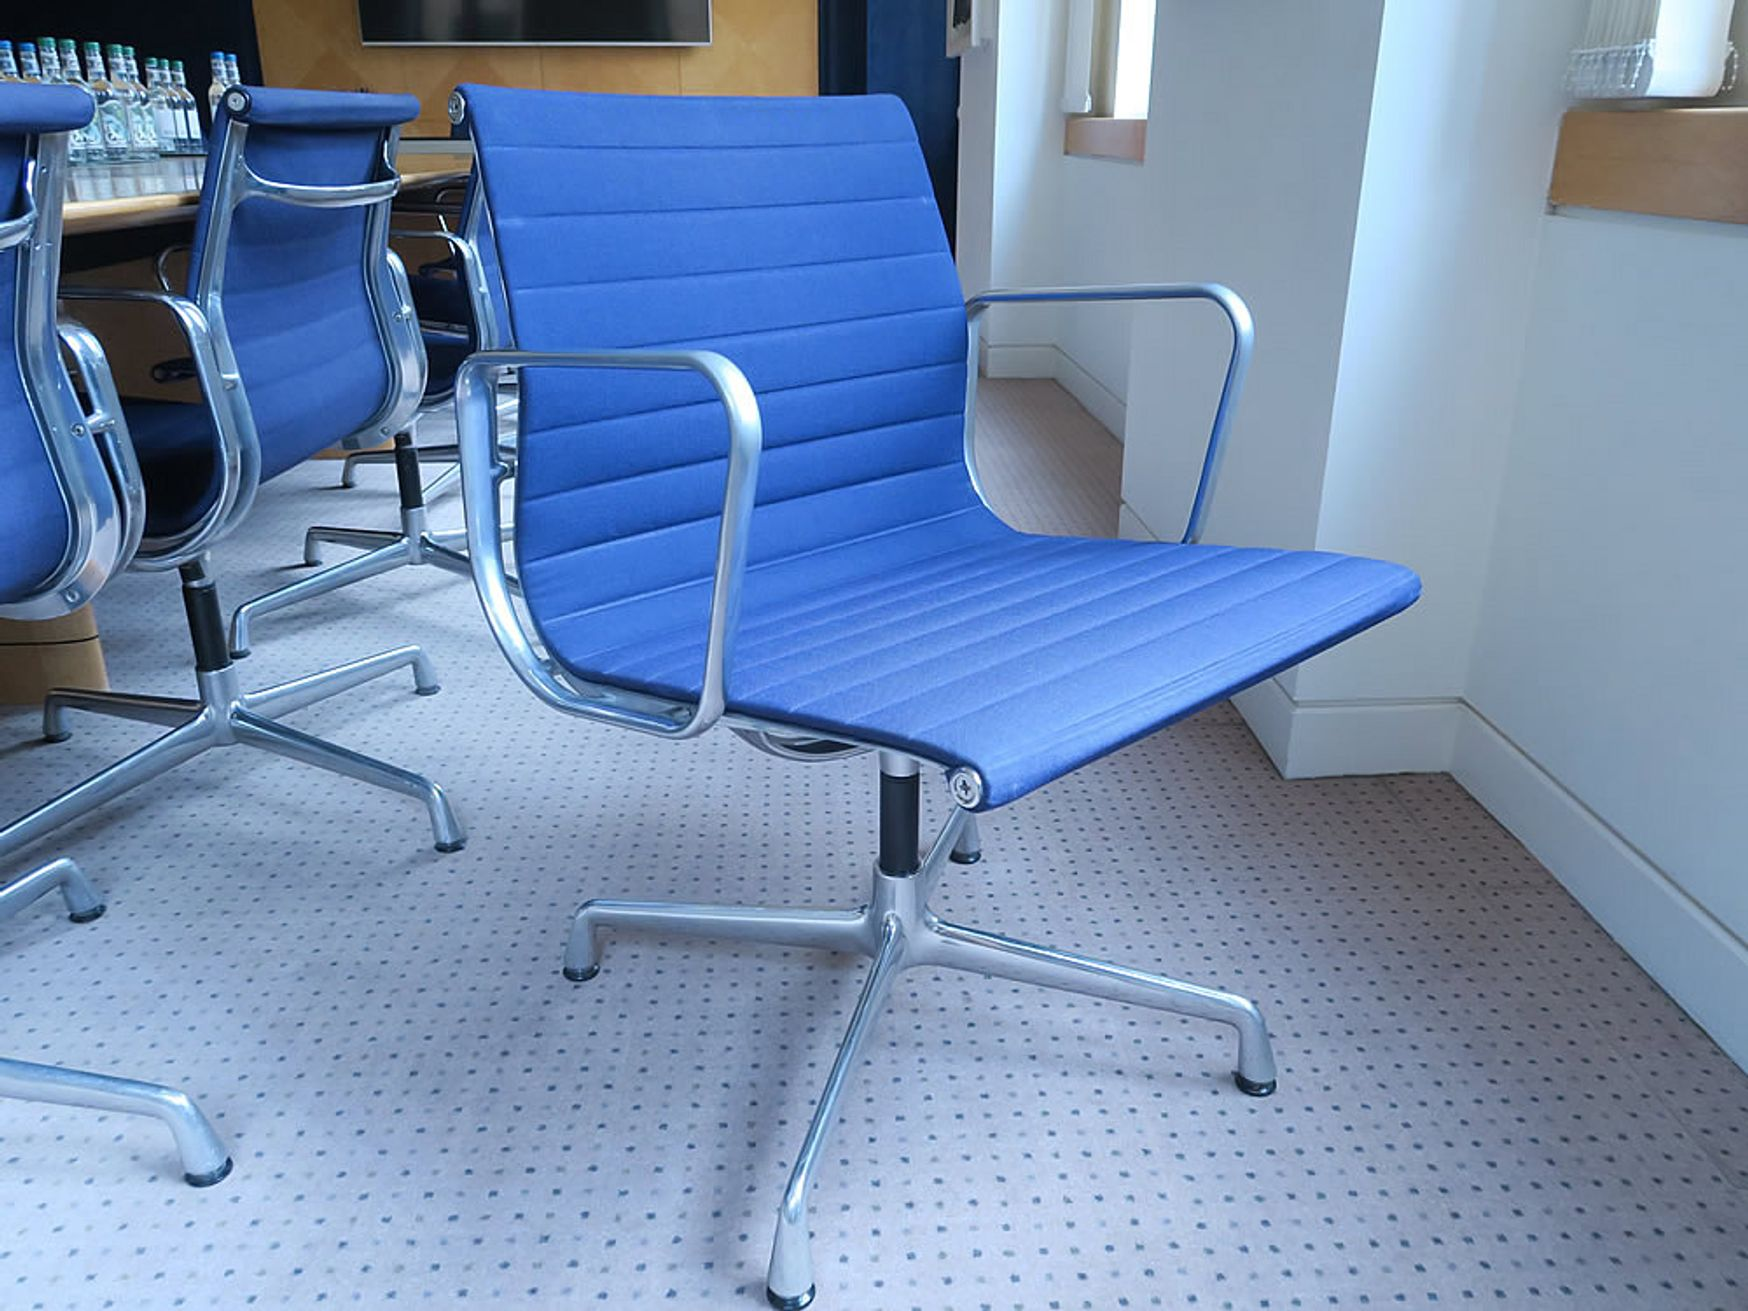 Genuine Vitra 'Aluminium Group' EA108 chairs designed by Charles & Ray Eames.